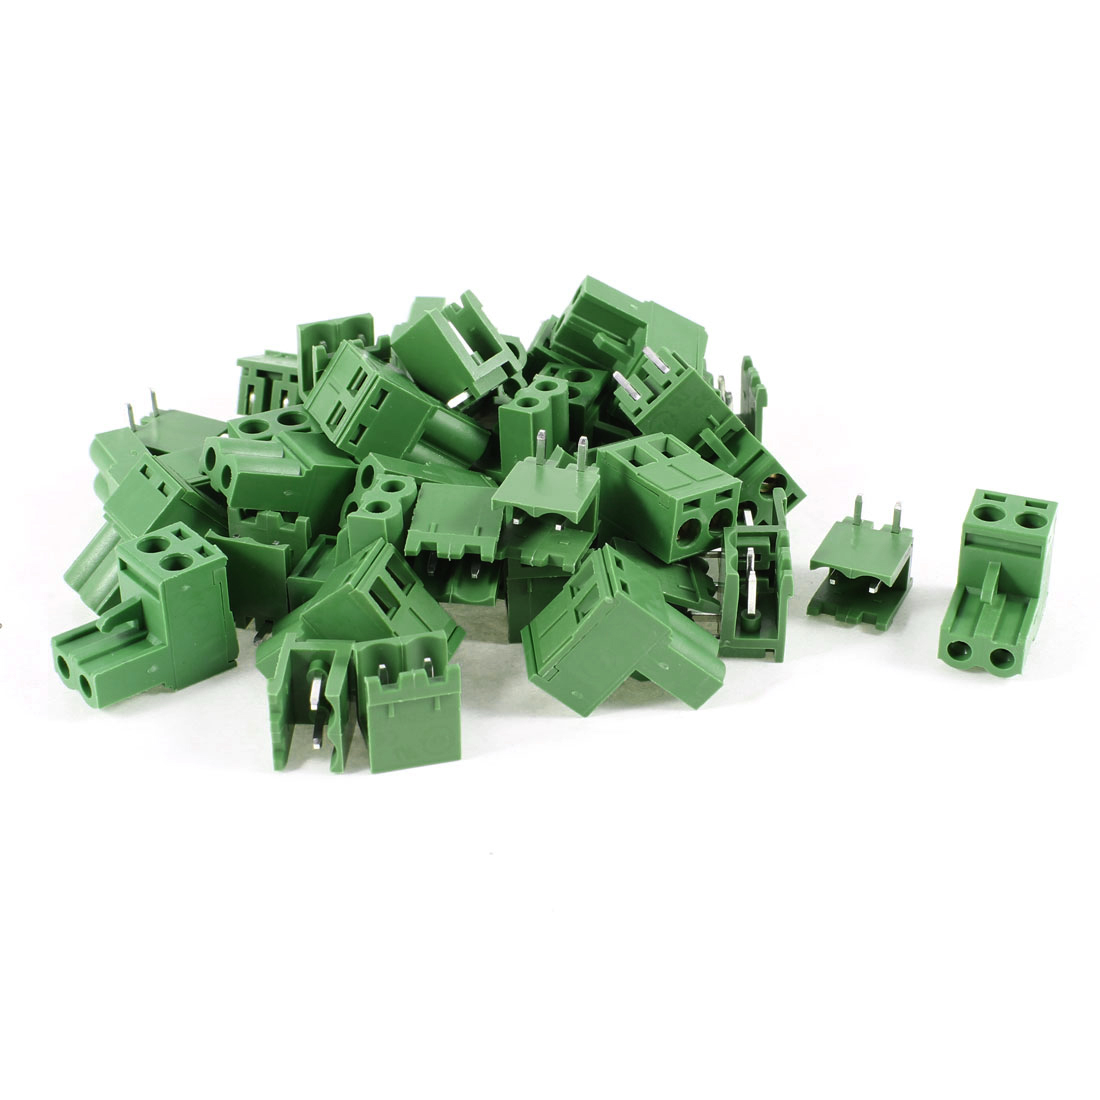 20 Pcs 300V 10A Single Row 2 Positions Pluggable Terminal Block Oliver Green